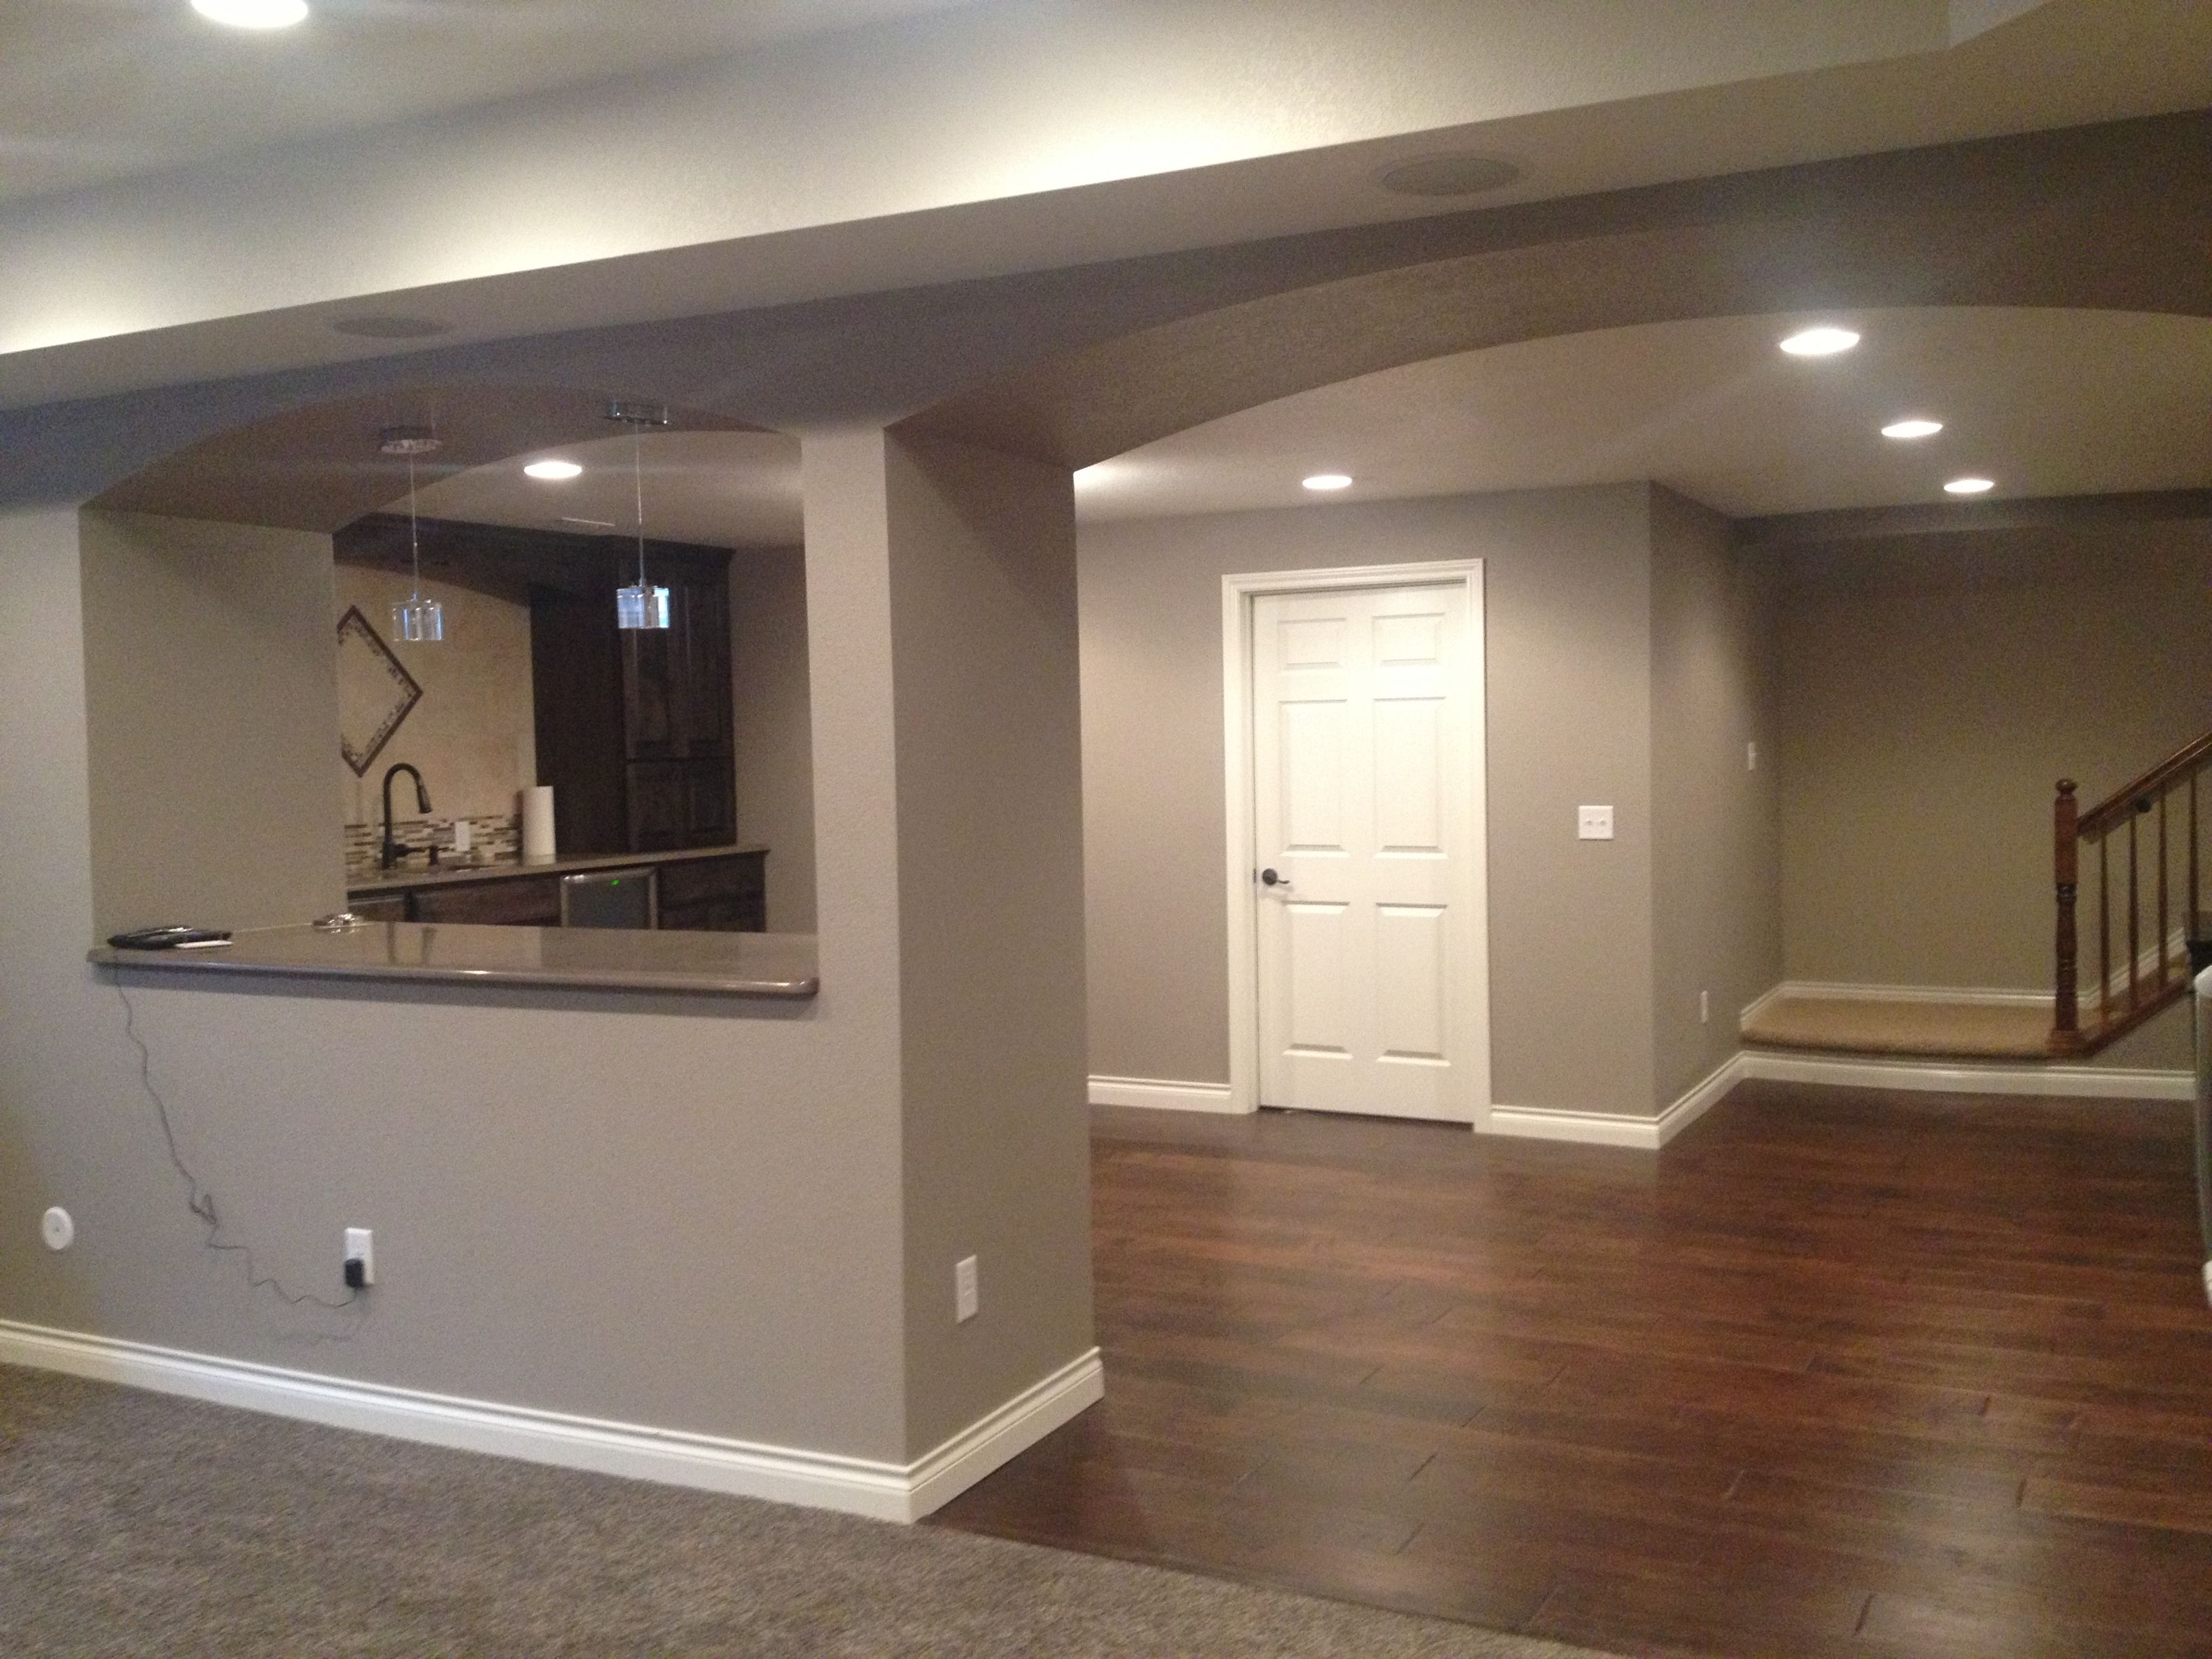 New Finished Basement Wall Ideas